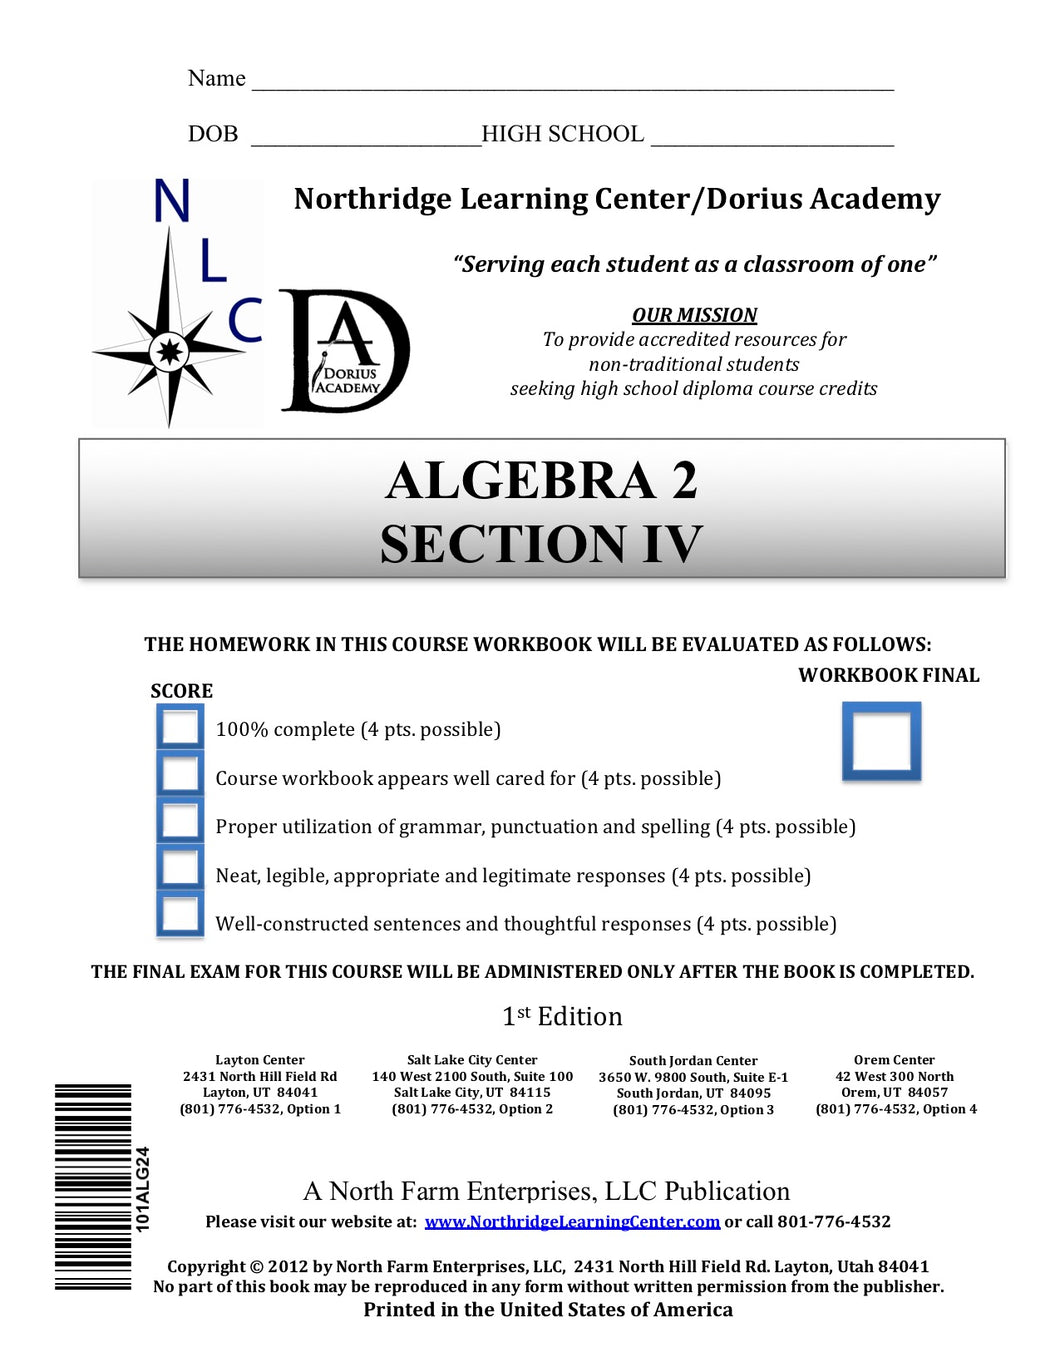 Algebra II, Section IV